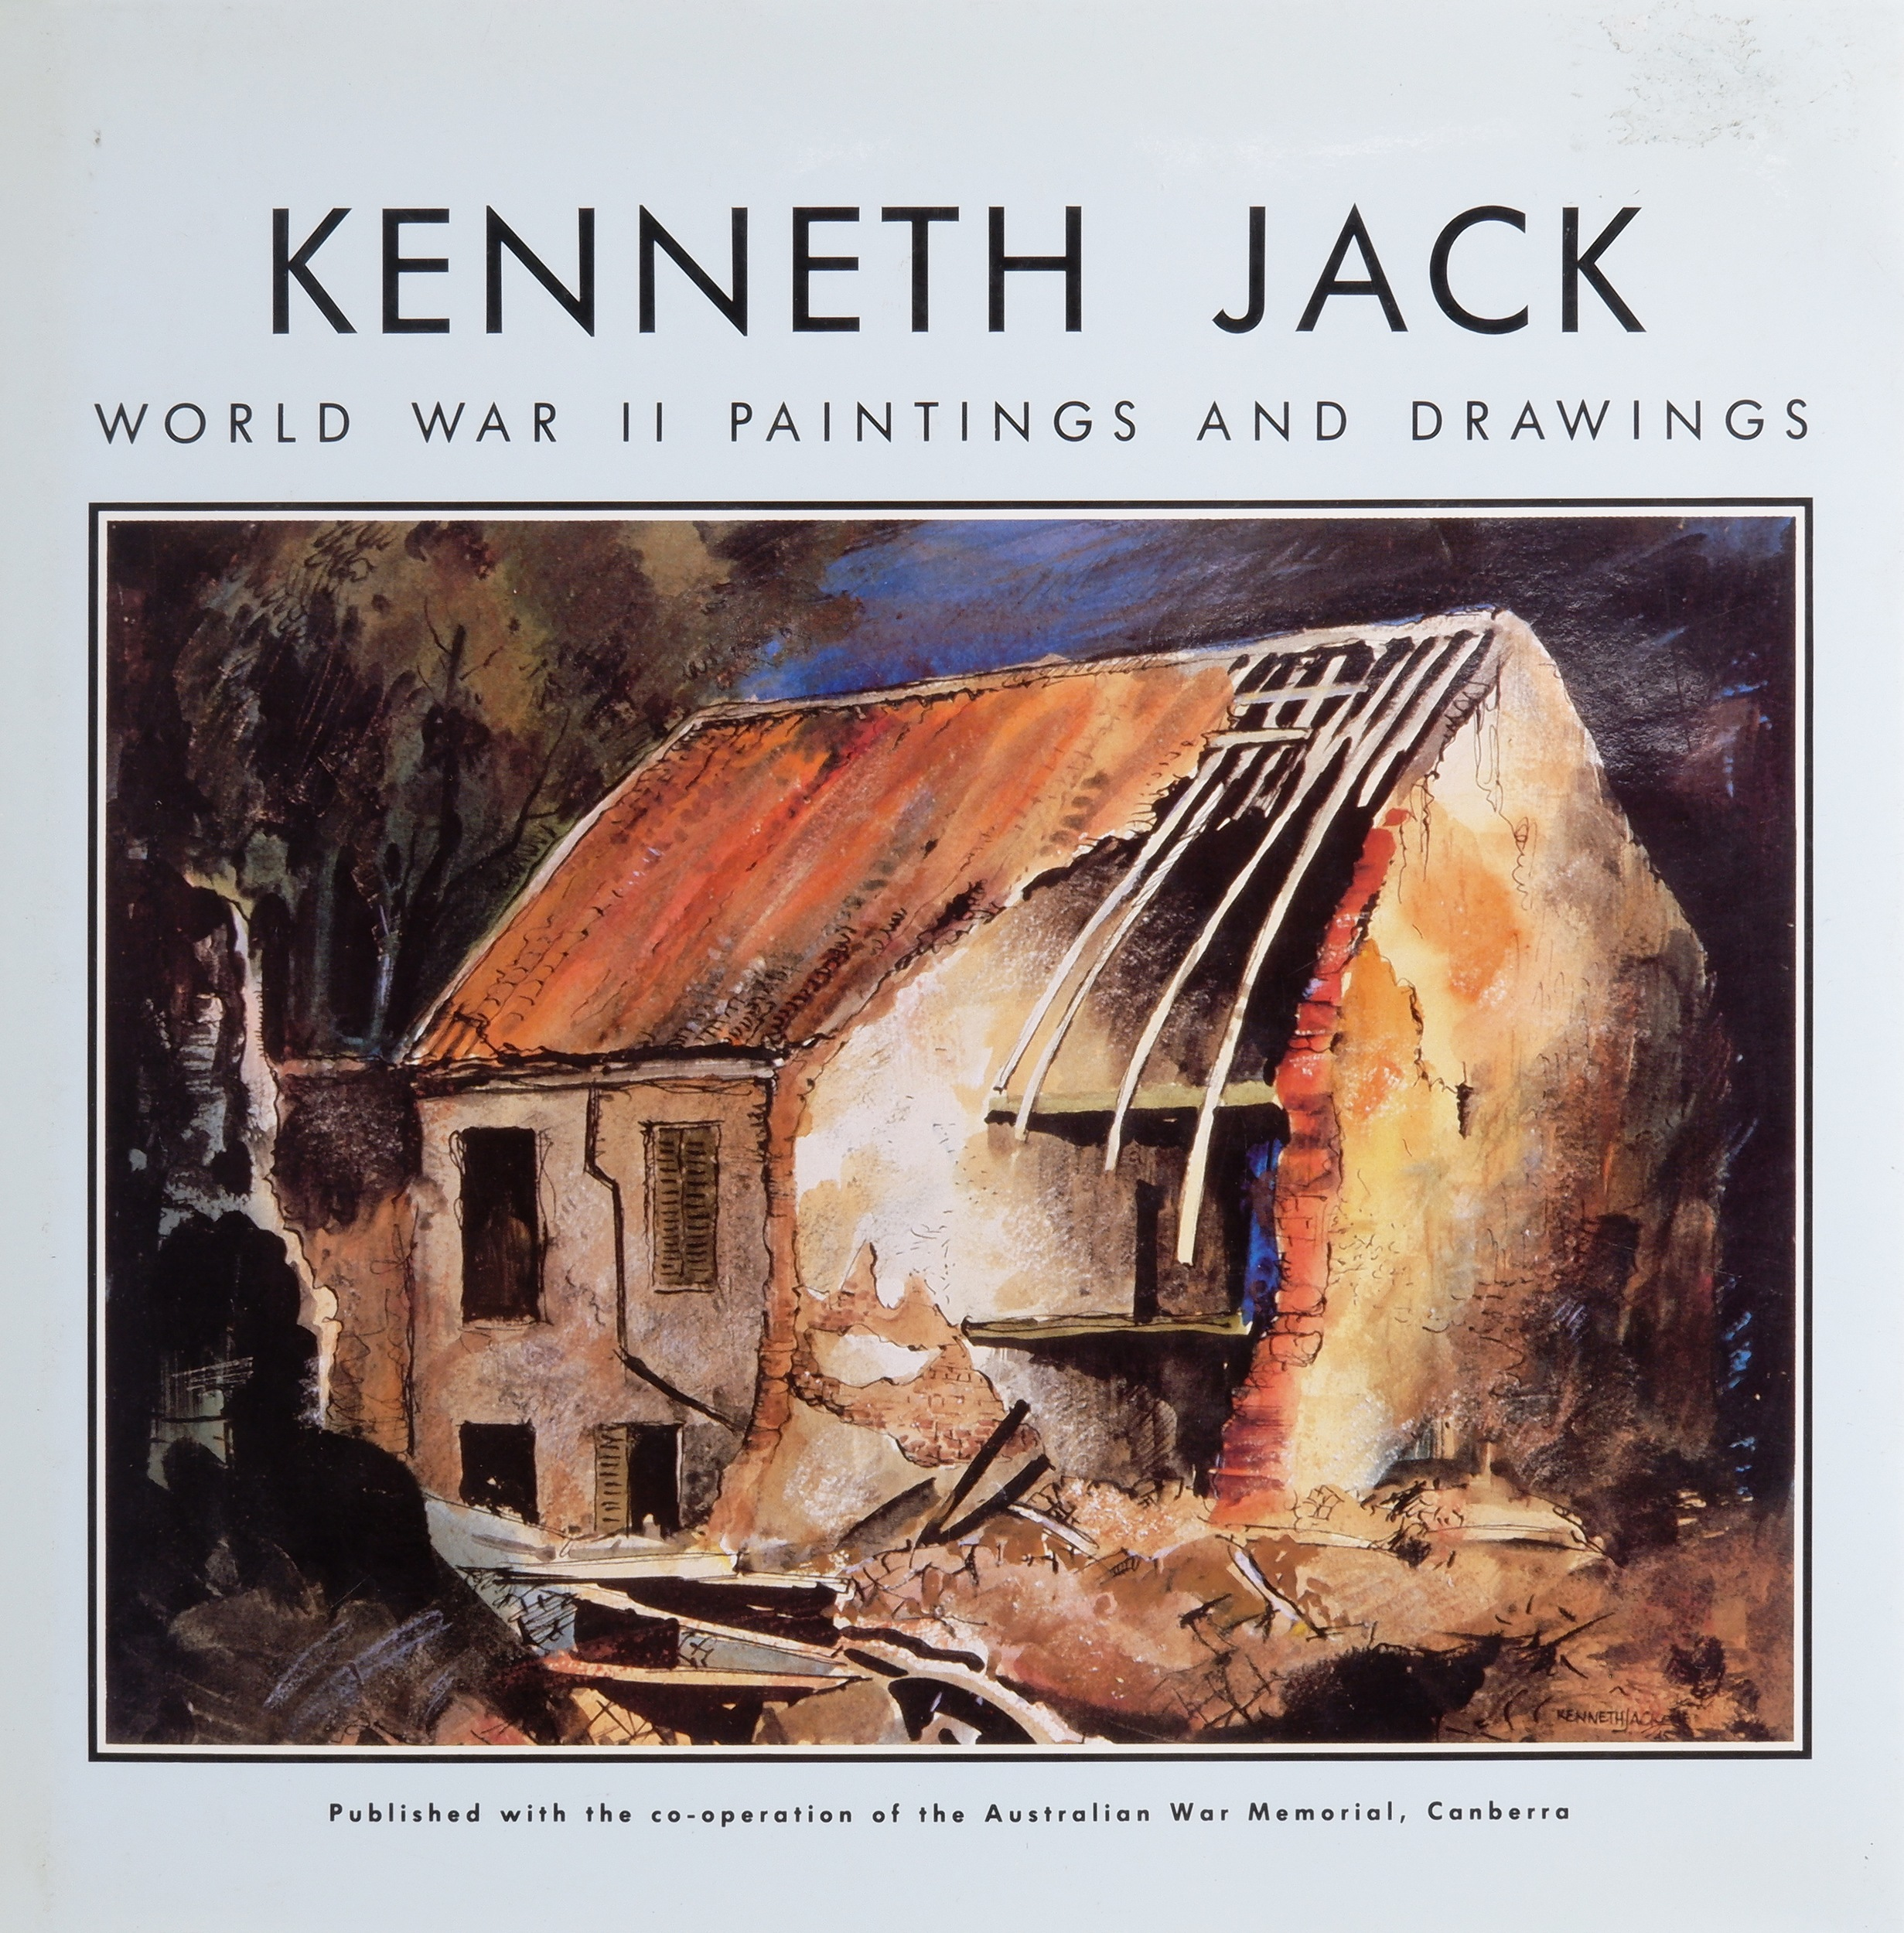 'Kenneth Jack: World War II Paintings and Drawings Boolarong Publishing, Brisbane, 1989. Hardcover. 104 pages'